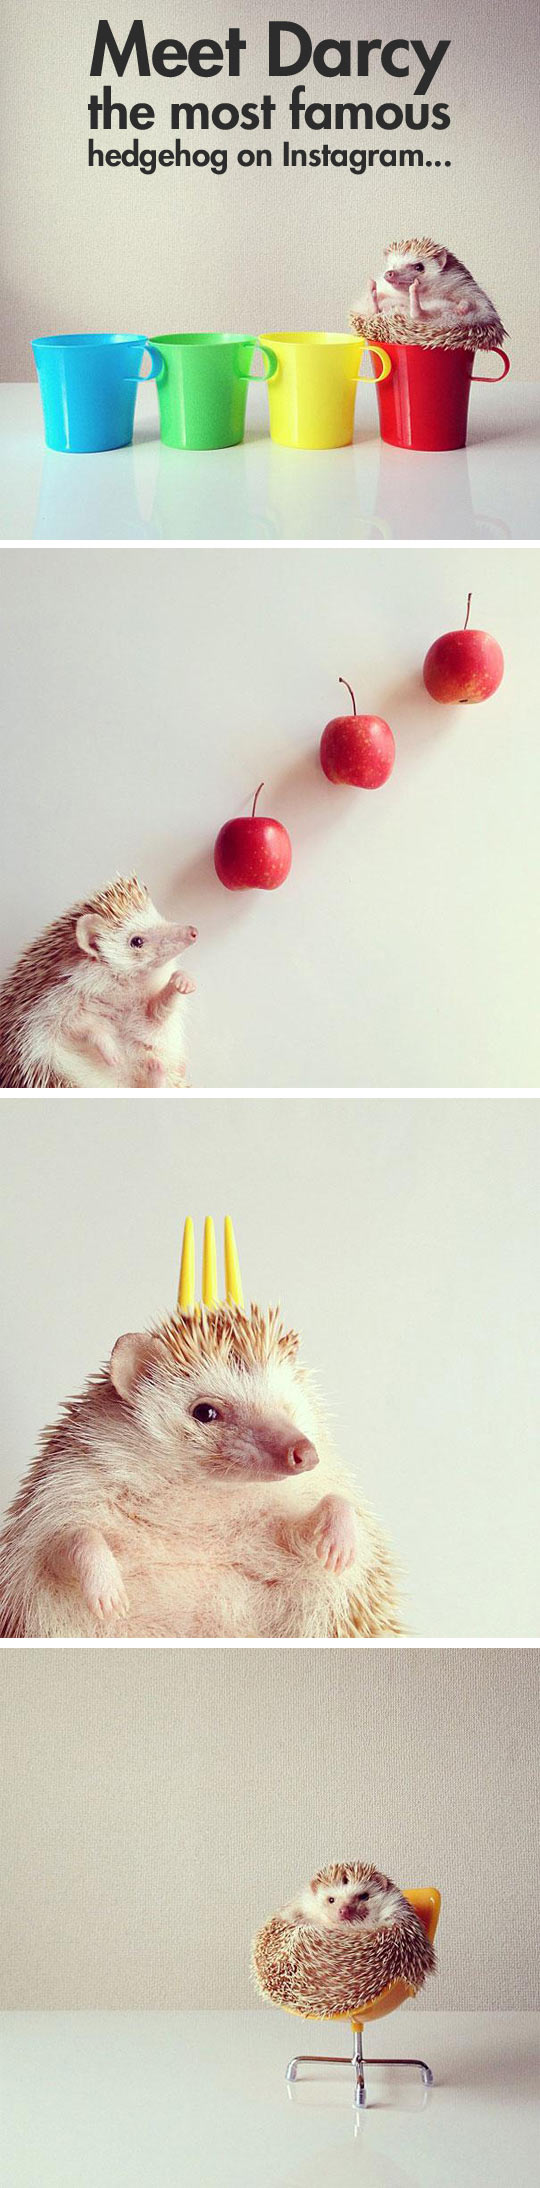 Darcy, the most famous hedgehog on the Internet...